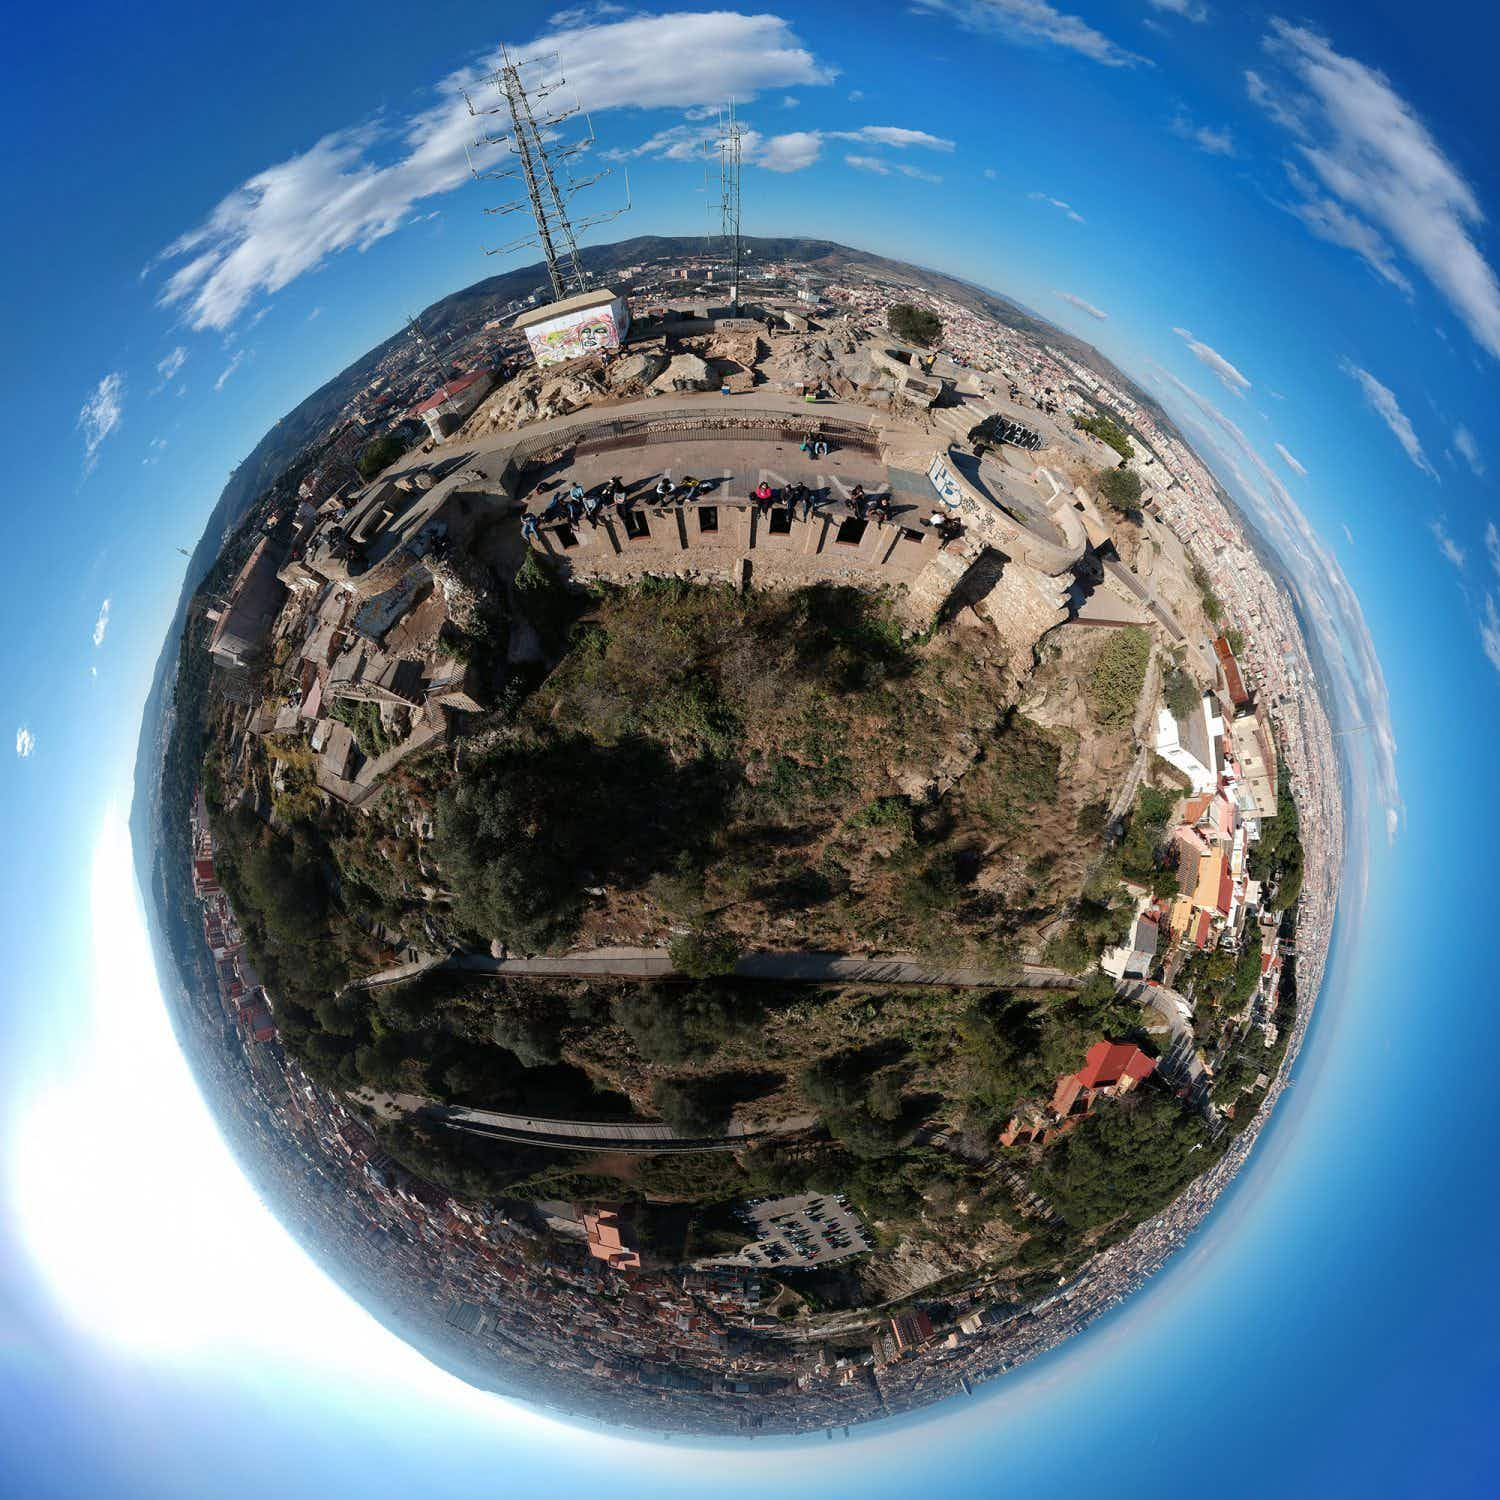 Barcelona's famous attractions appear as mini-planets in this quirky photo project